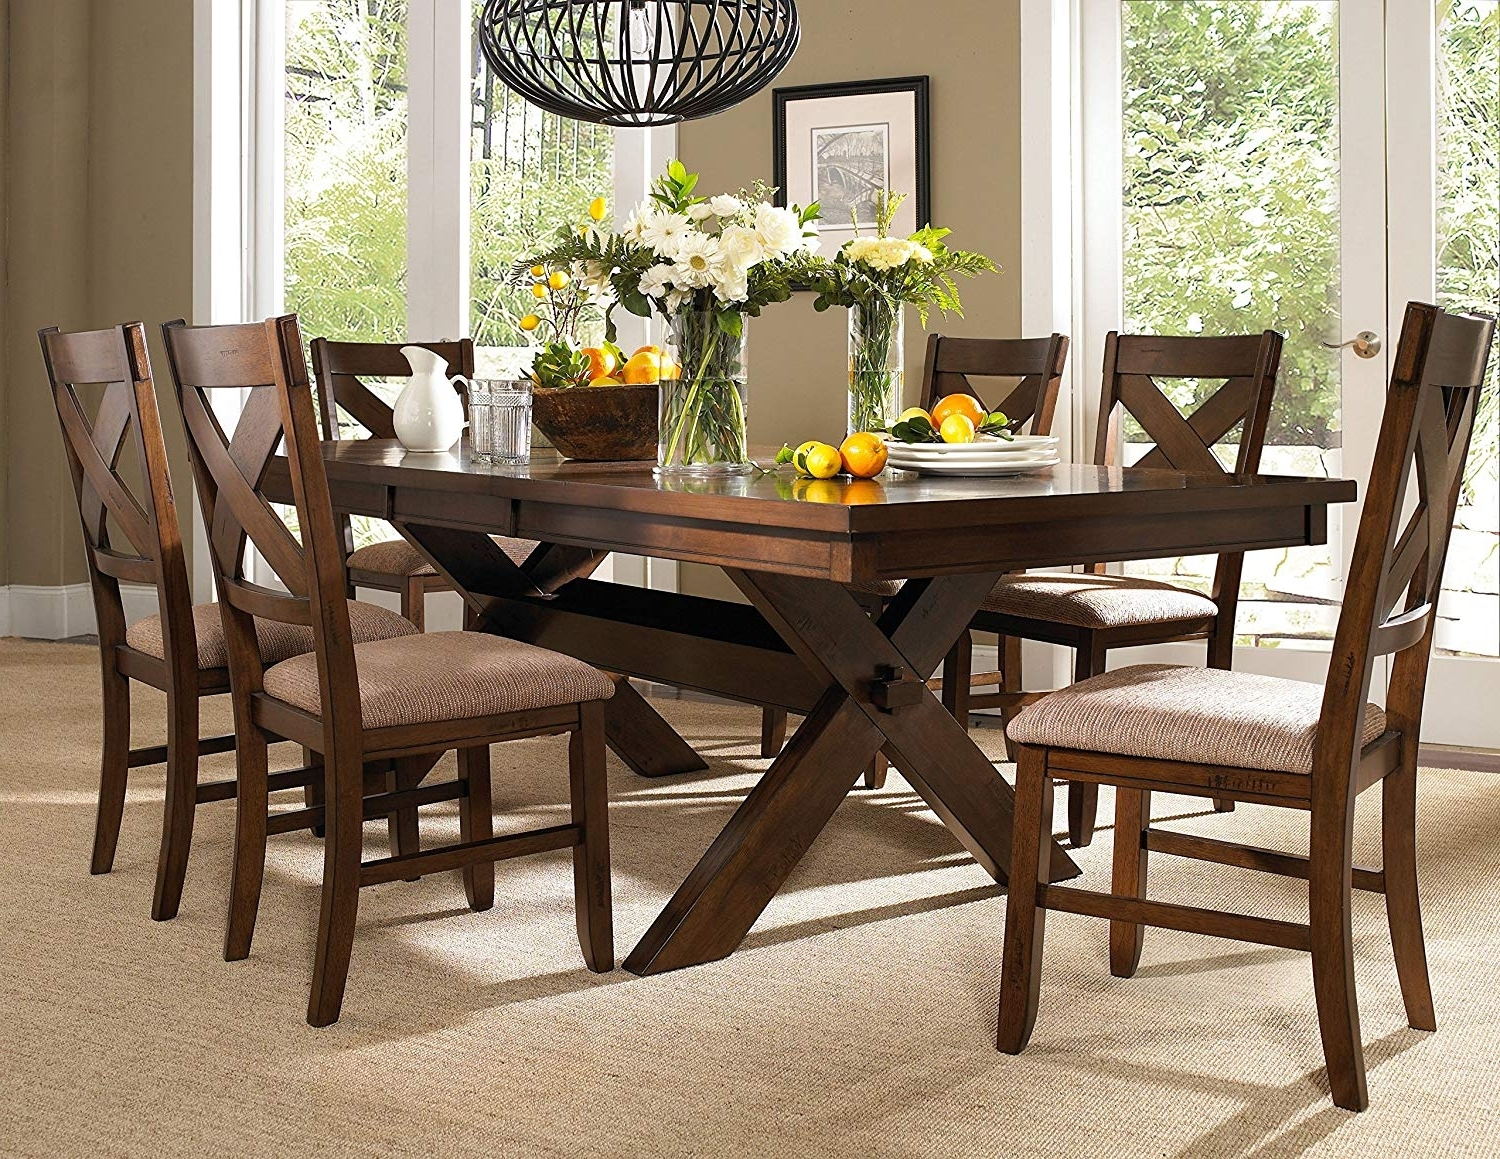 Well Liked 6 Chair Dining Table Sets Within Amazon – Powell 713 417M2 7 Piece Wooden Kraven Dining Set (View 25 of 25)